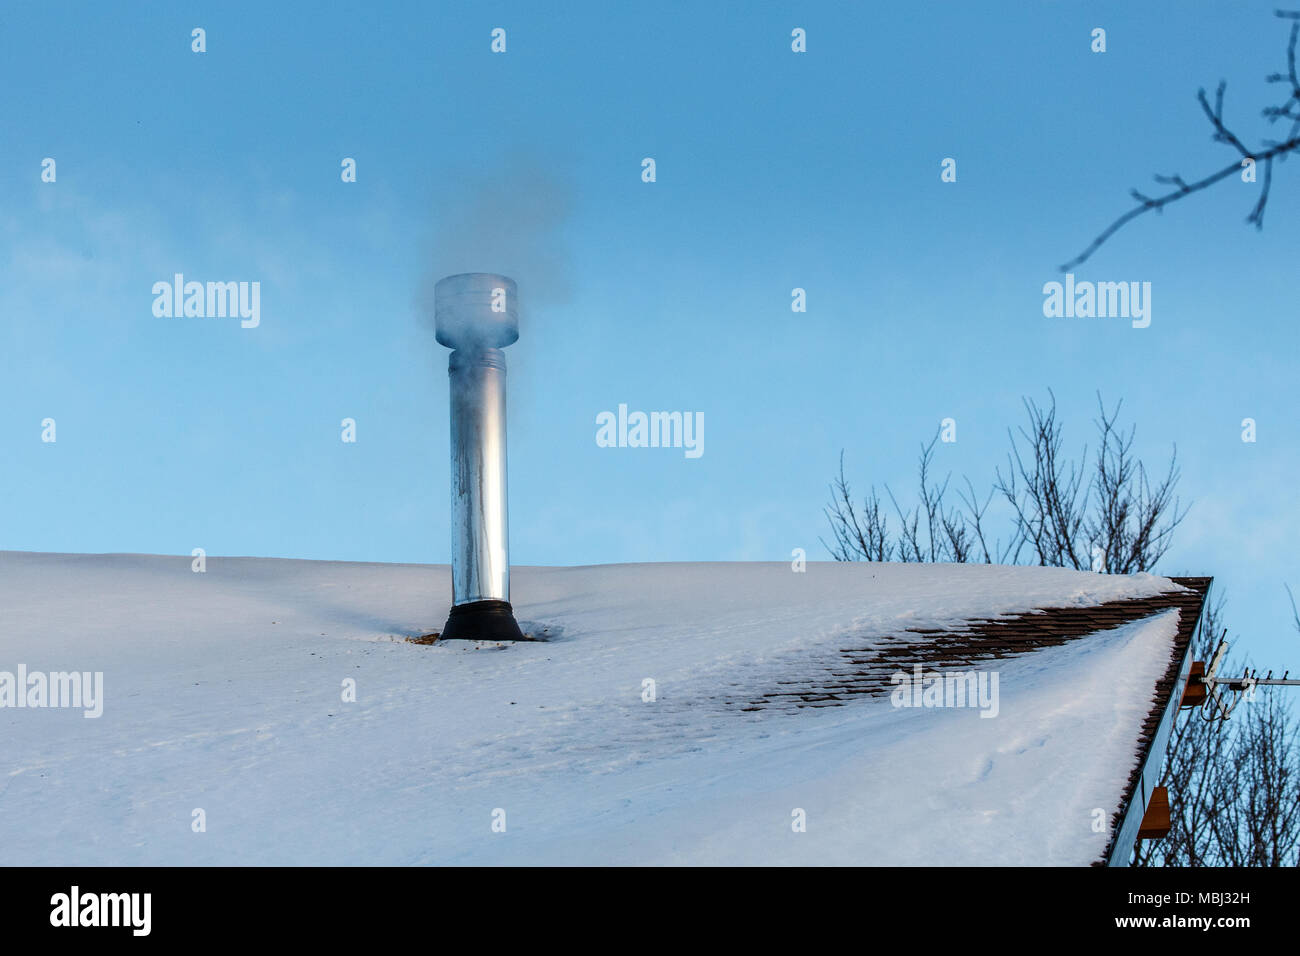 chimney on roof with smog and full moon - Stock Image